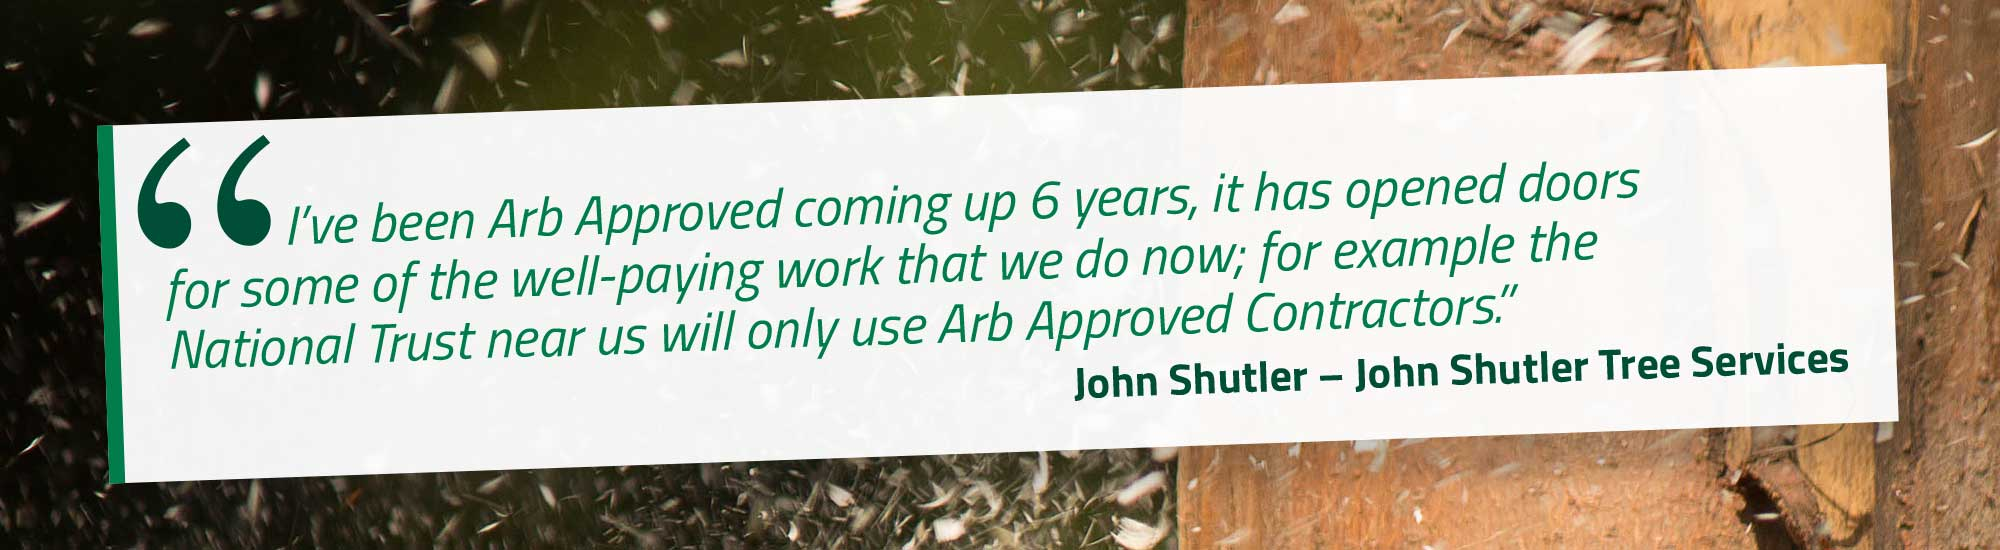 I've been Arb Approved coming up 6 years, it has opened doors for some of the well-paying work that we do now; for example the National Trust near us will only use Arb Approved Contractors. John Shutler – John Shutler Tree Services